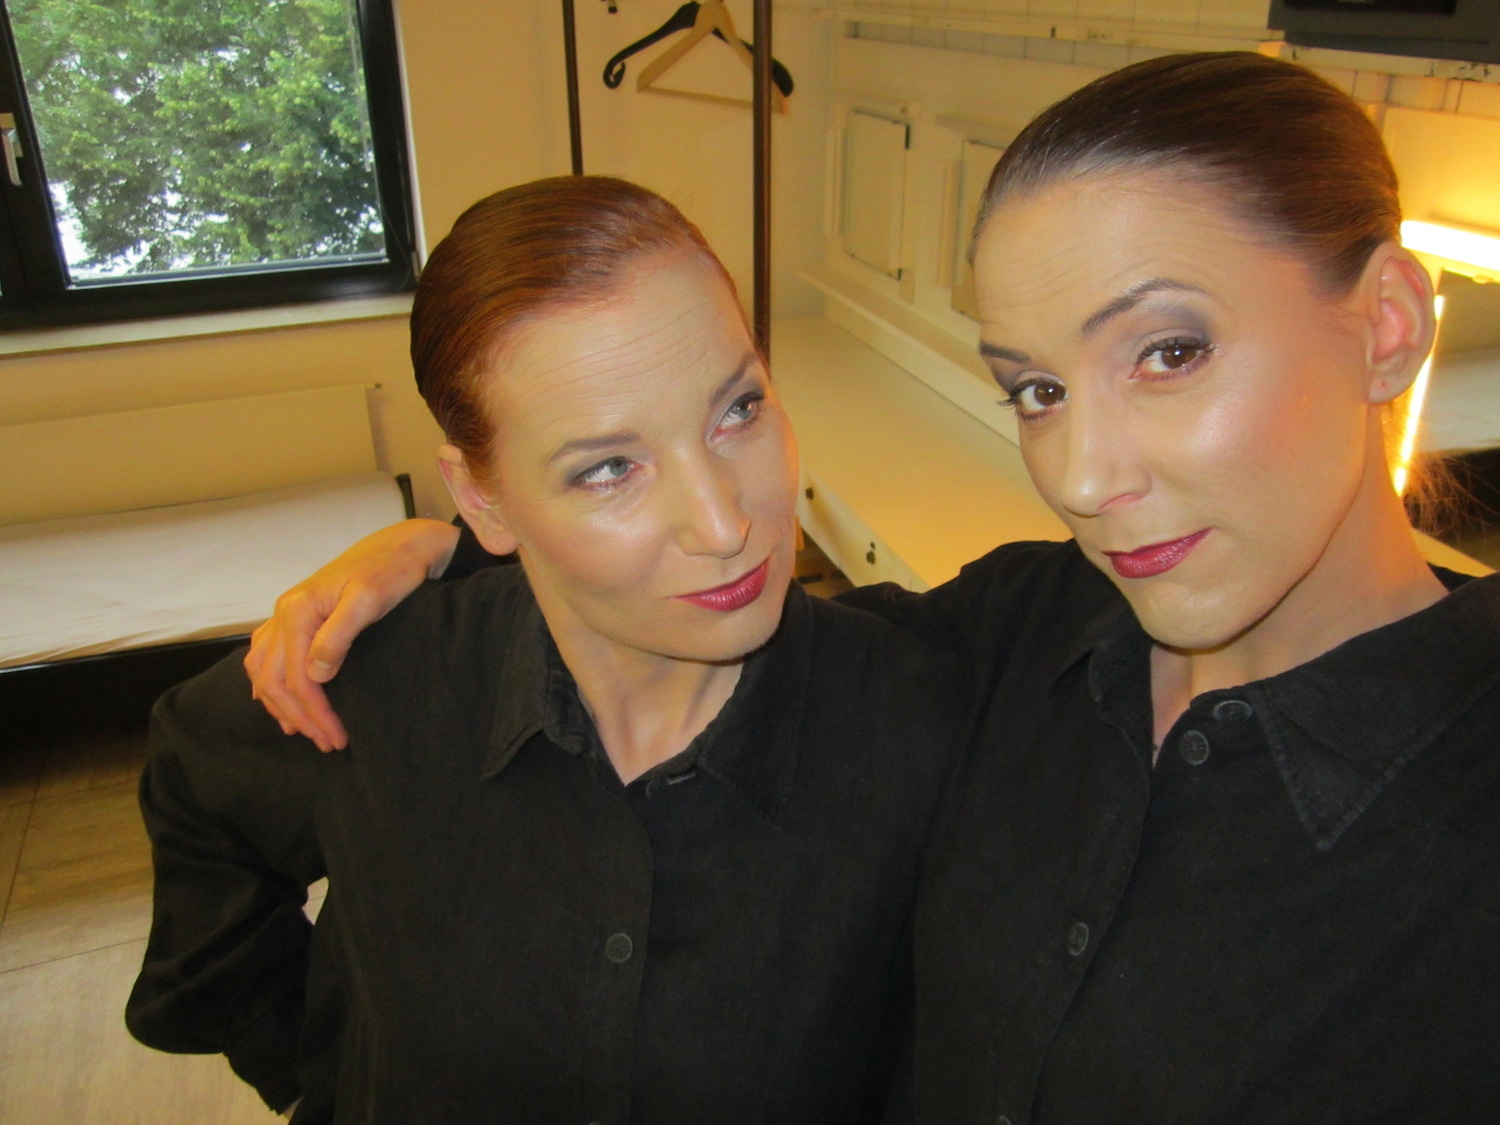 """In """"Satyagraha"""" garb backstage at Oper Bonn, Germany with Bea Robein"""